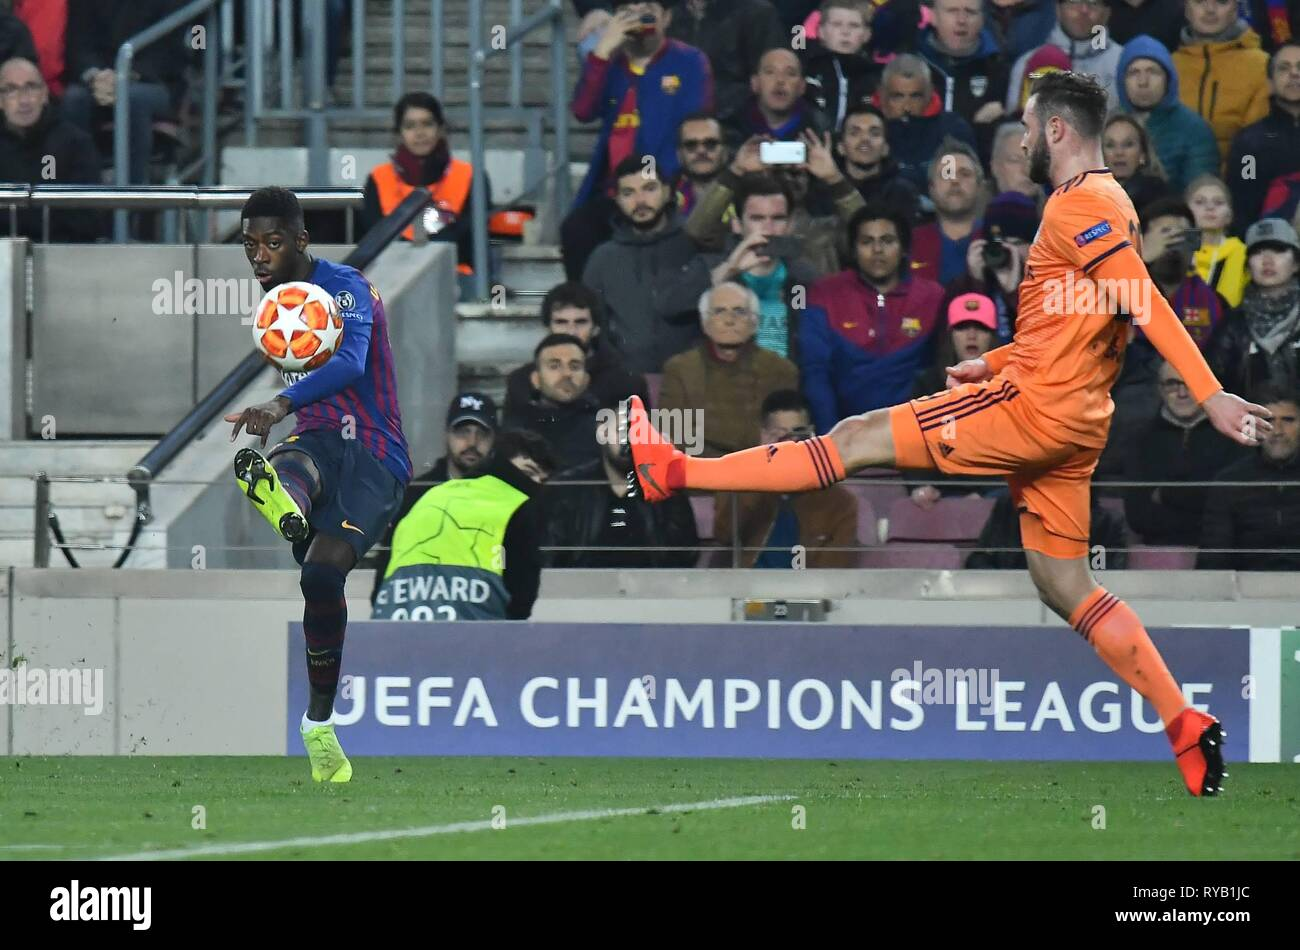 Dembele of FC Barcelona in action during the Champions League, football match between FC Barcelona vs Olympique Lyon on March 13, 2019 at Camp Nou stadium in Barcelona, Spain  Cordon Press - Stock Image